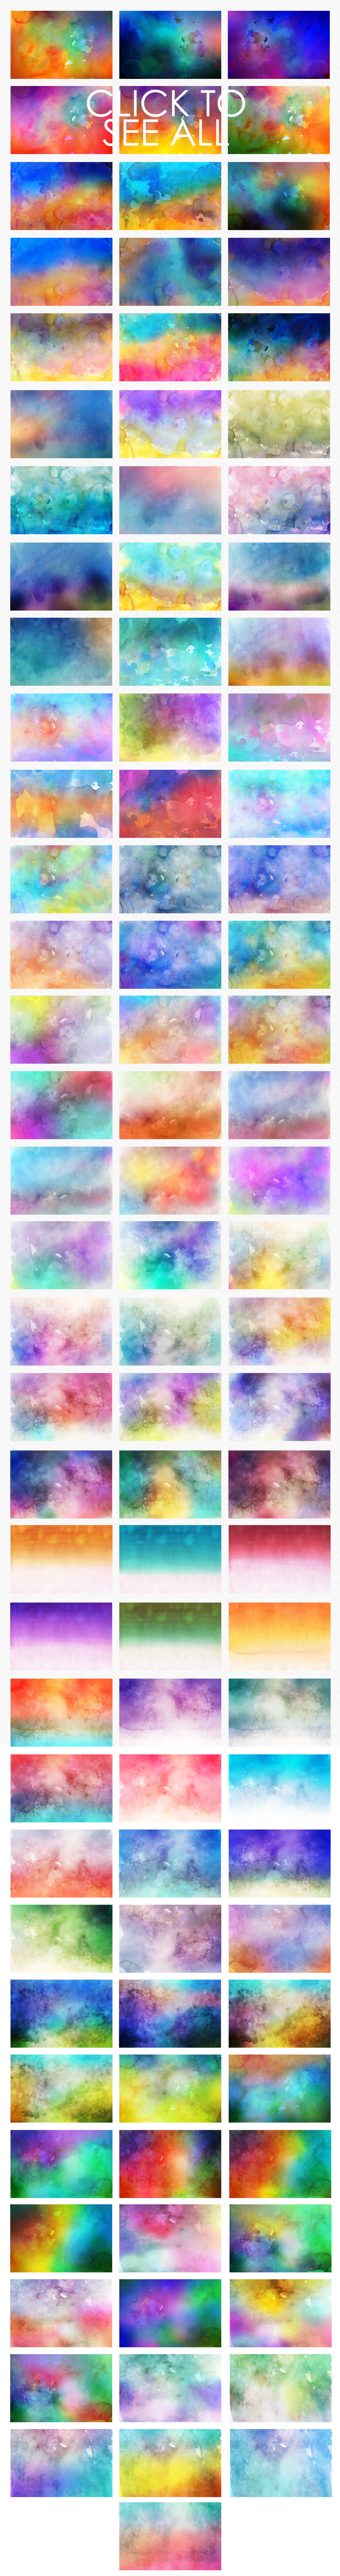 100 Watercolor Backgrounds Vol.1 example image 2